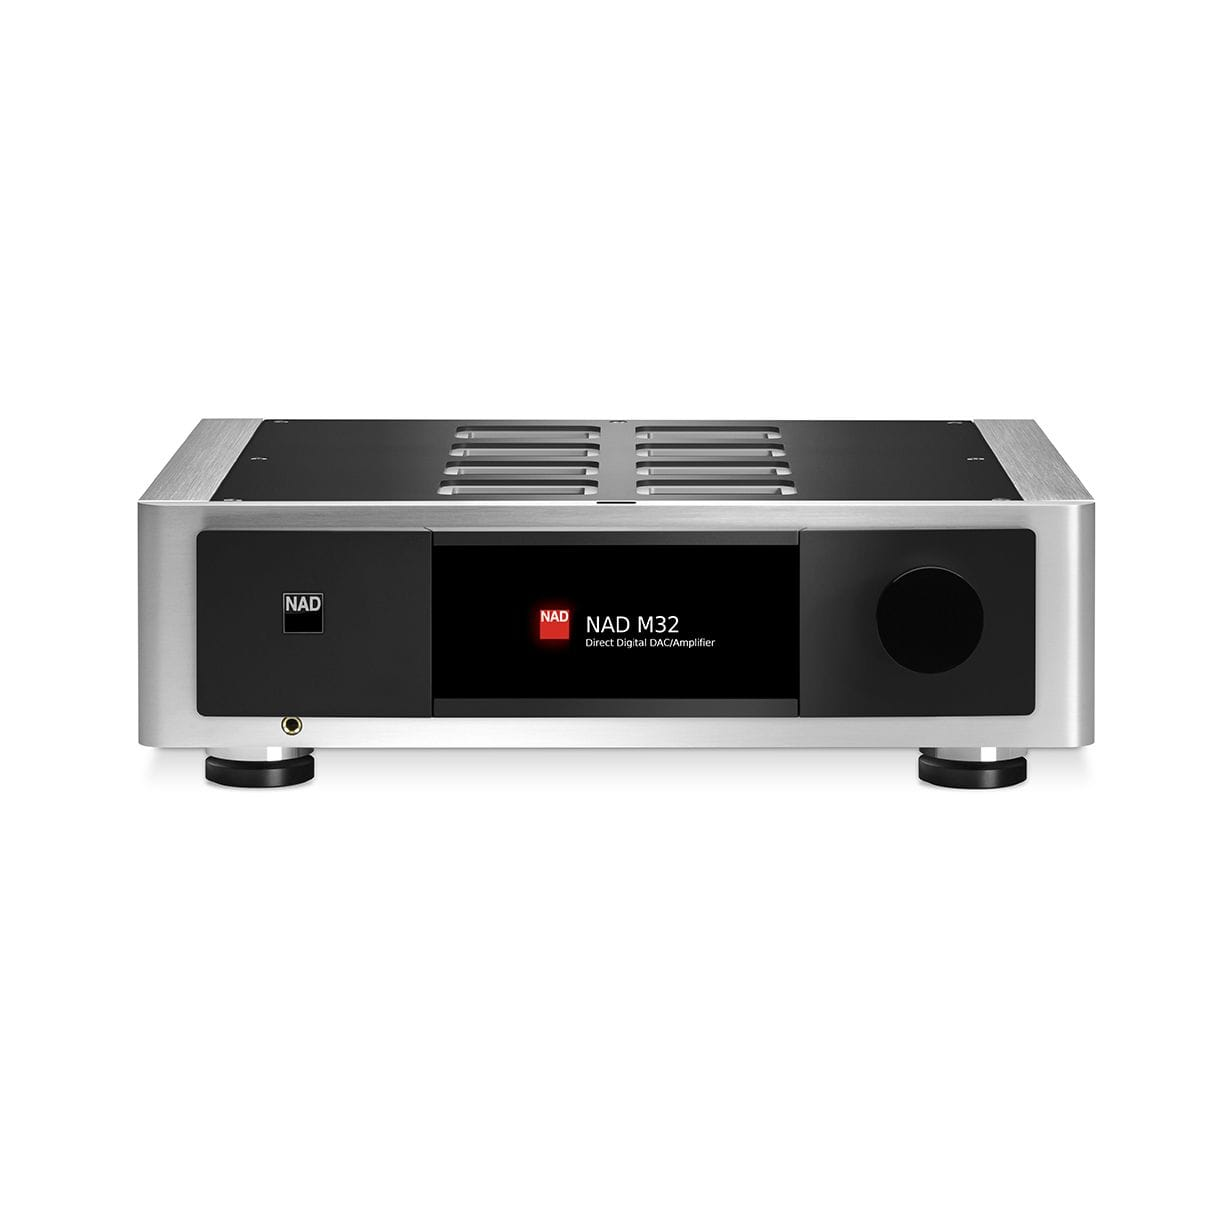 NAD Masters Series M32 Direct Digital Amplifier